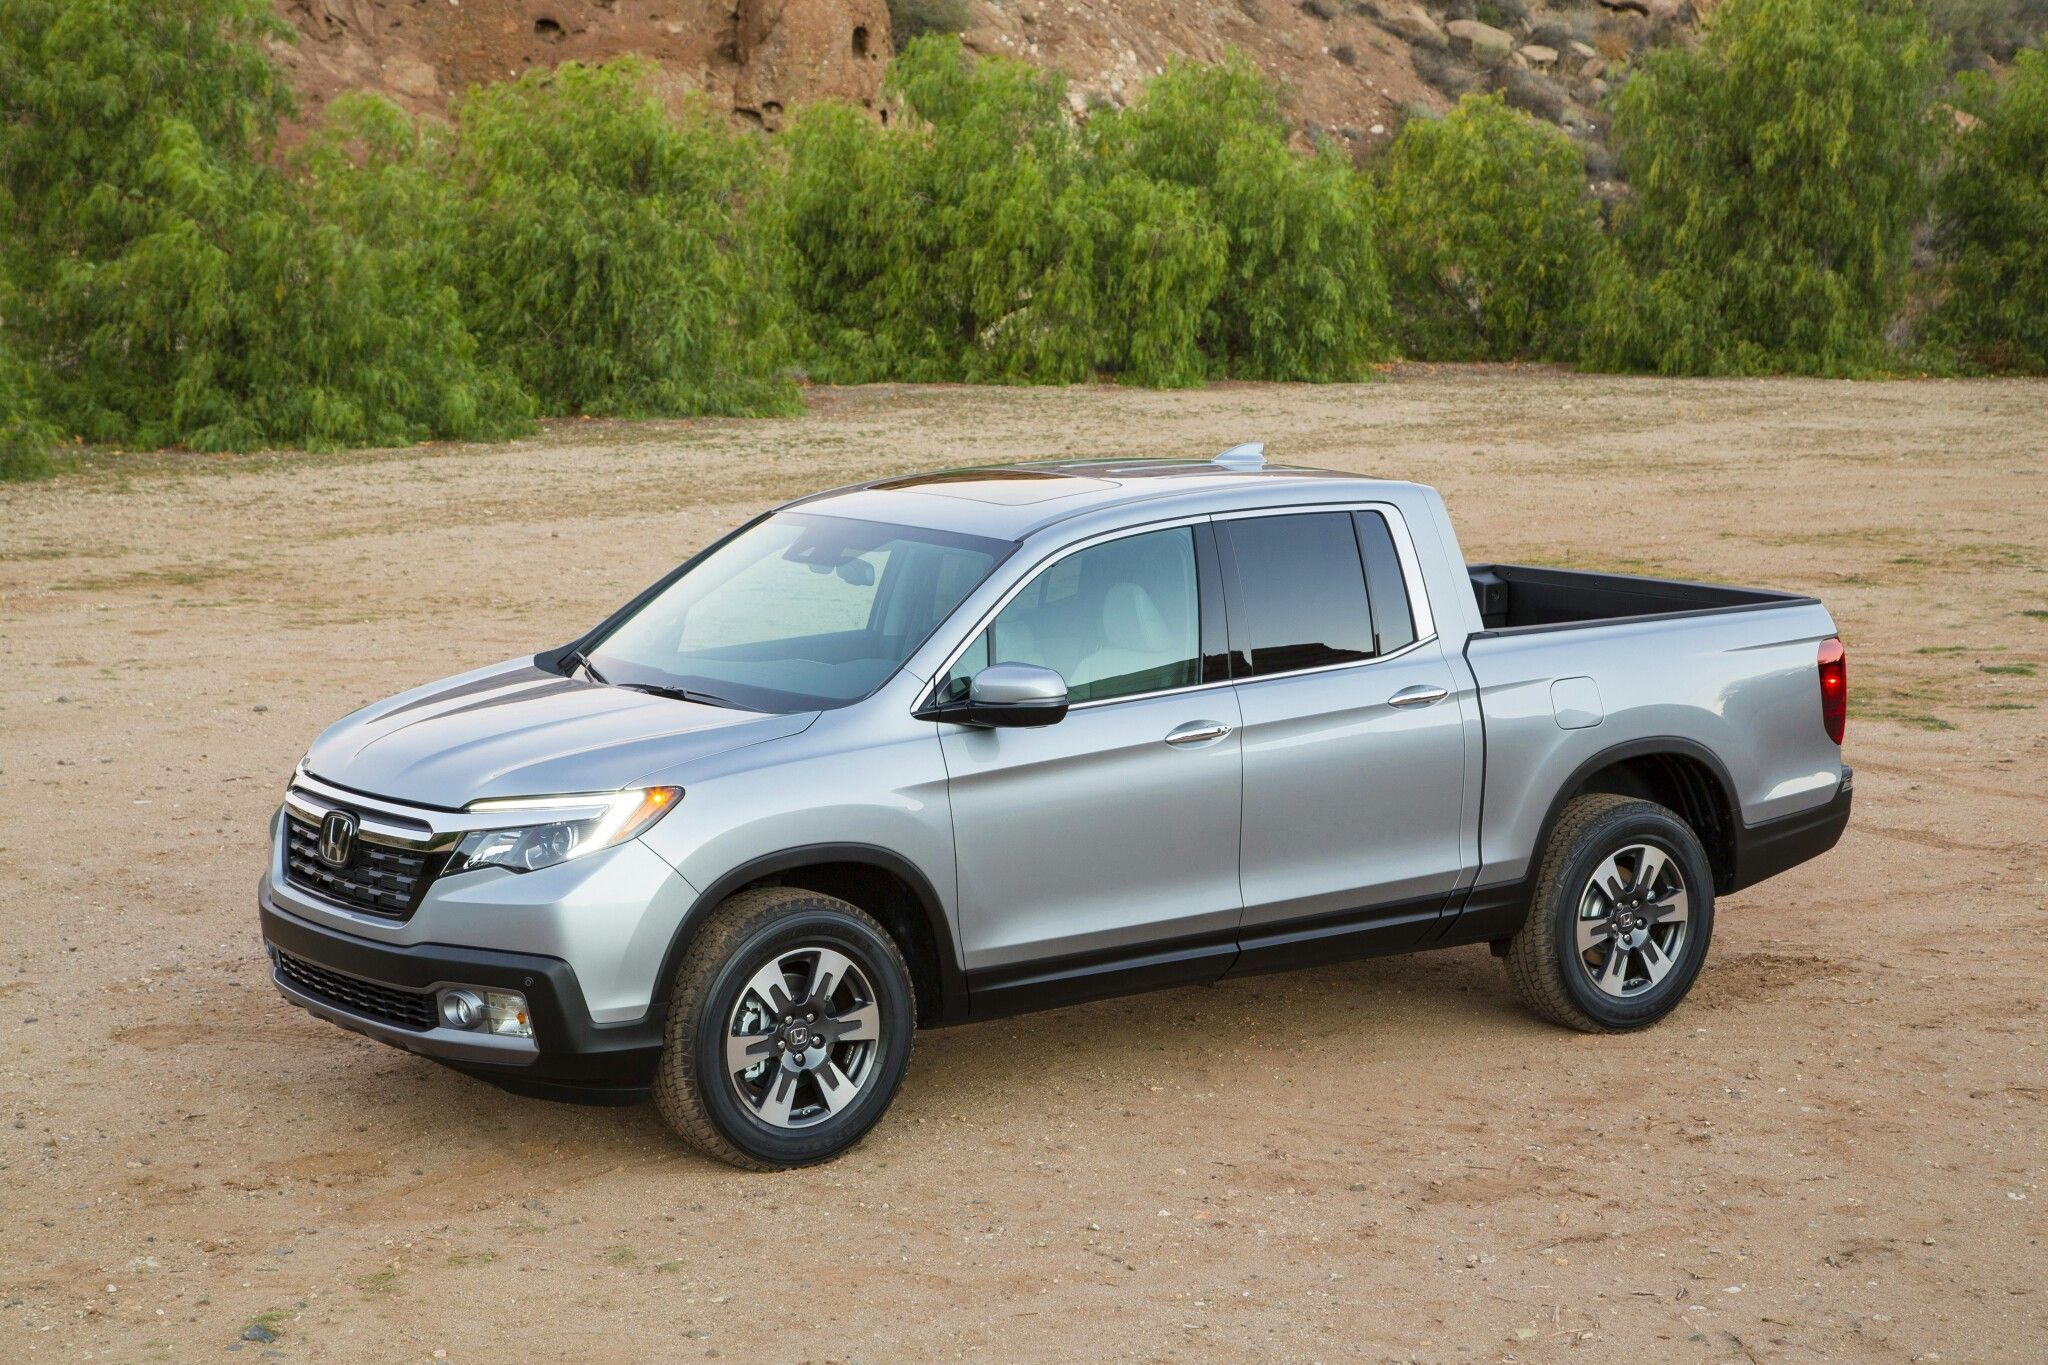 0b4a66a225731cdf591999e075fa0cd7 Interesting Info About Honda Ridgeline 2008